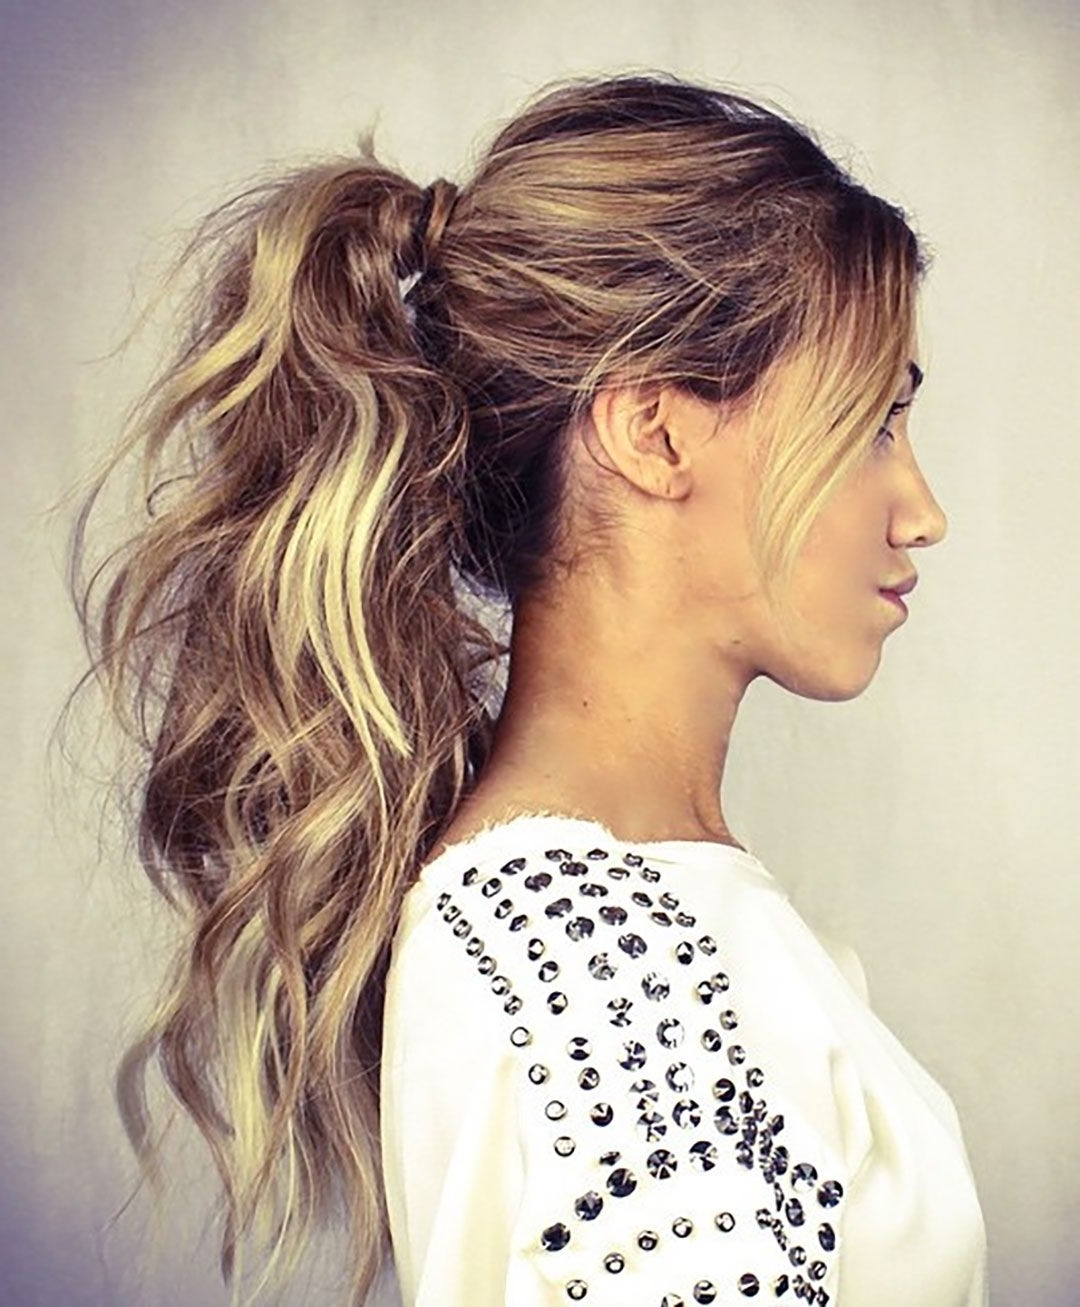 Diy Ponytail Ideas You're Totally Going To Want To Instagram (Gallery 1 of 20)